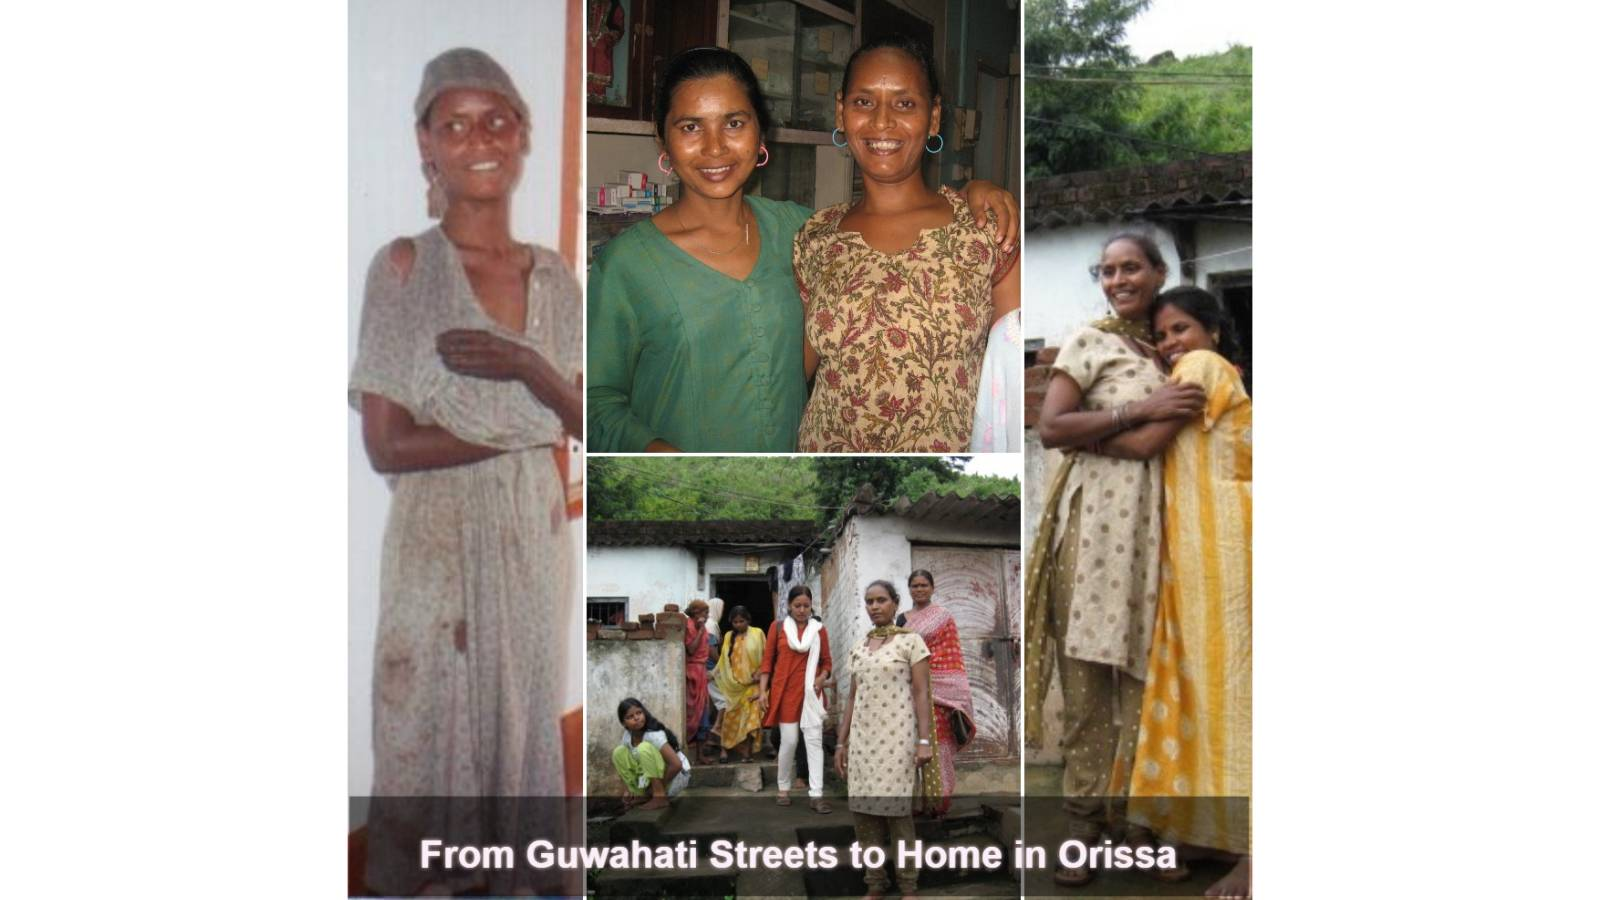 Transformation of a homeless woman with mental illness reunited with her family